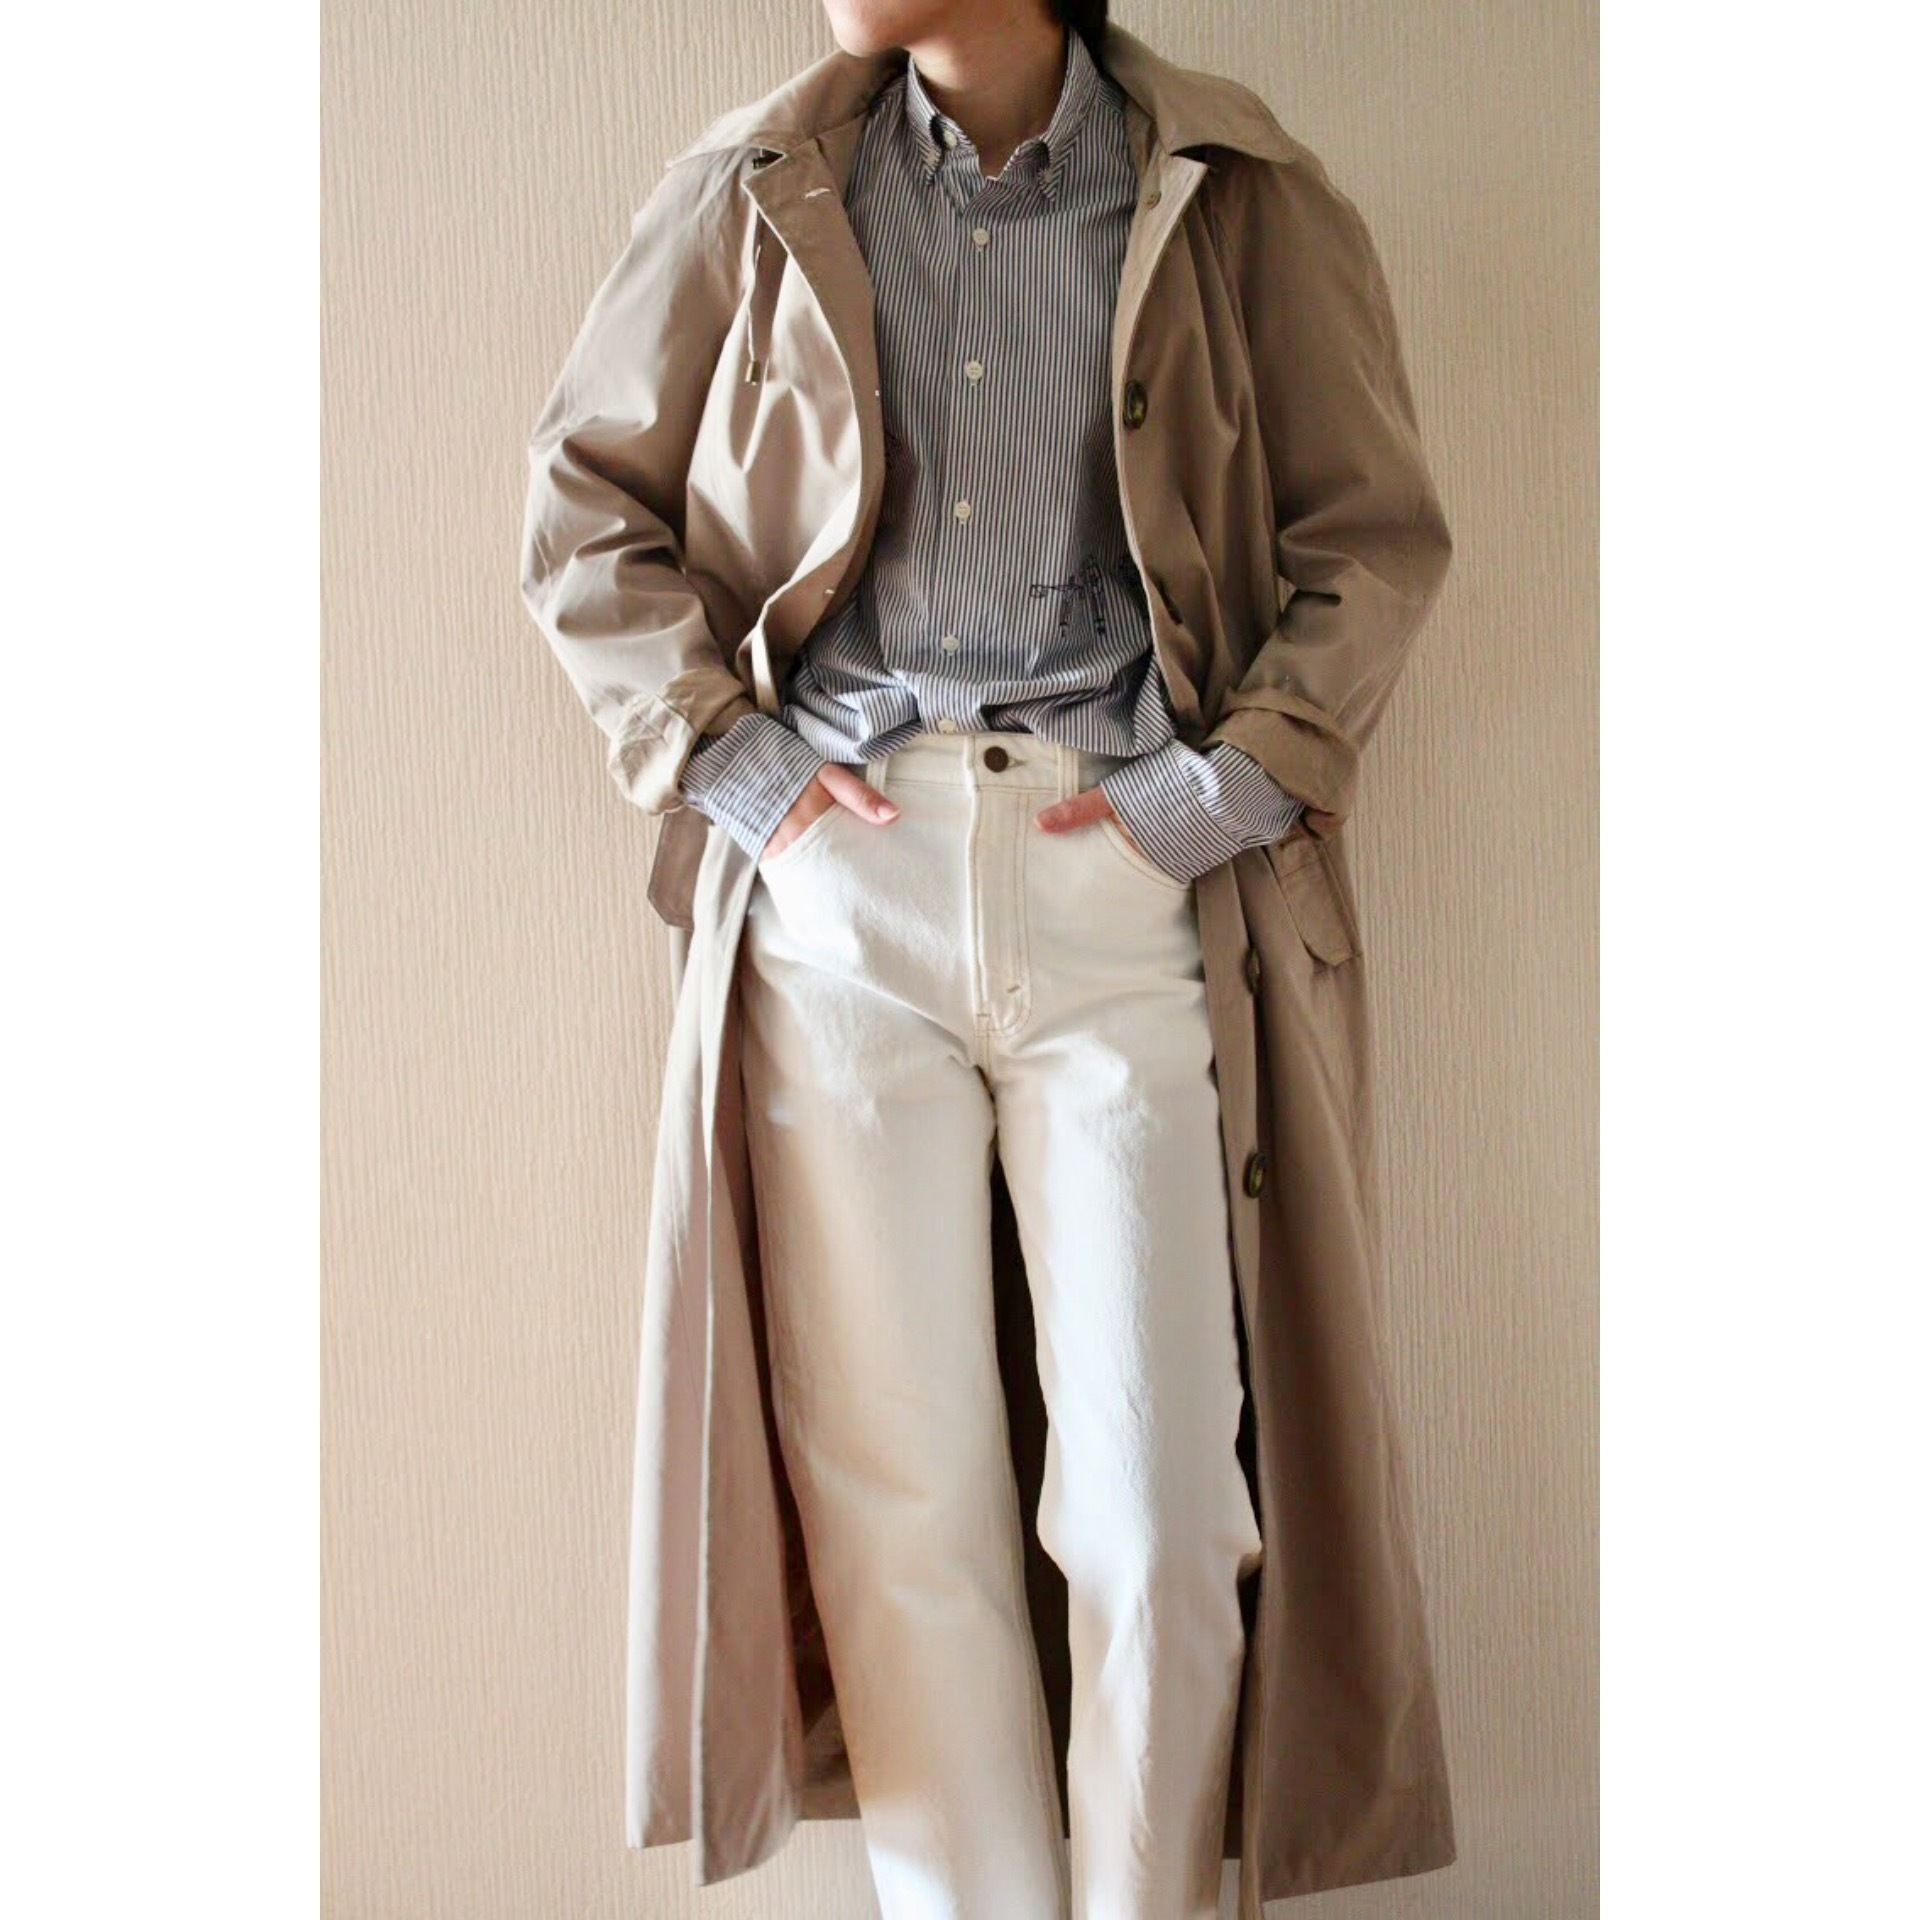 Vintage hooded long coat